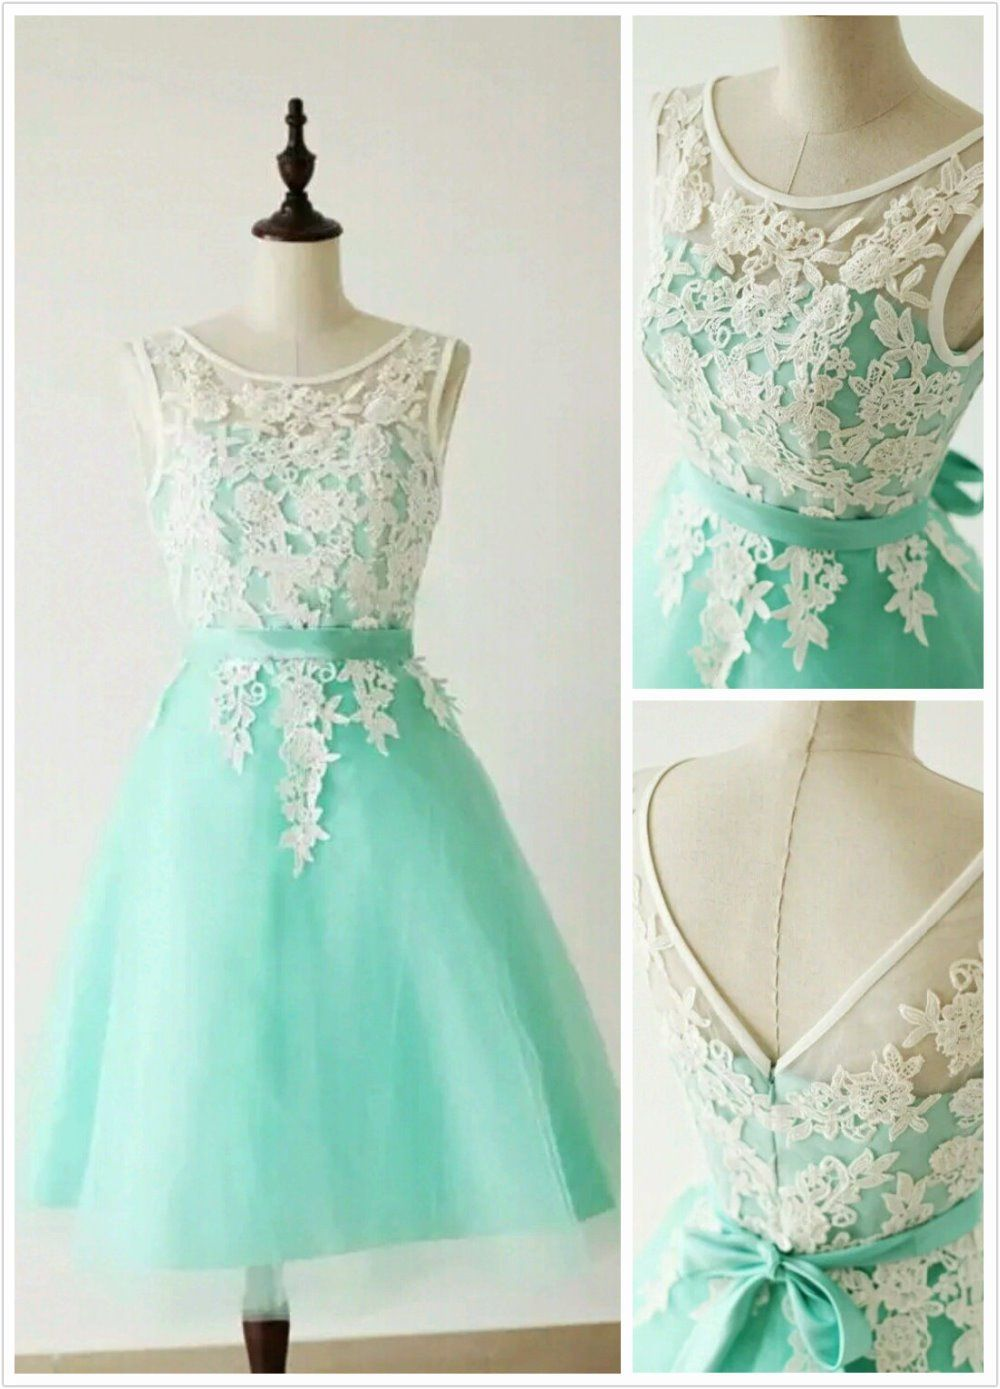 Aqua mint lace applique high quality short bridesmaid dress aqua mint lace applique high quality short bridesmaid dress wedding party dress custom ombrellifo Gallery